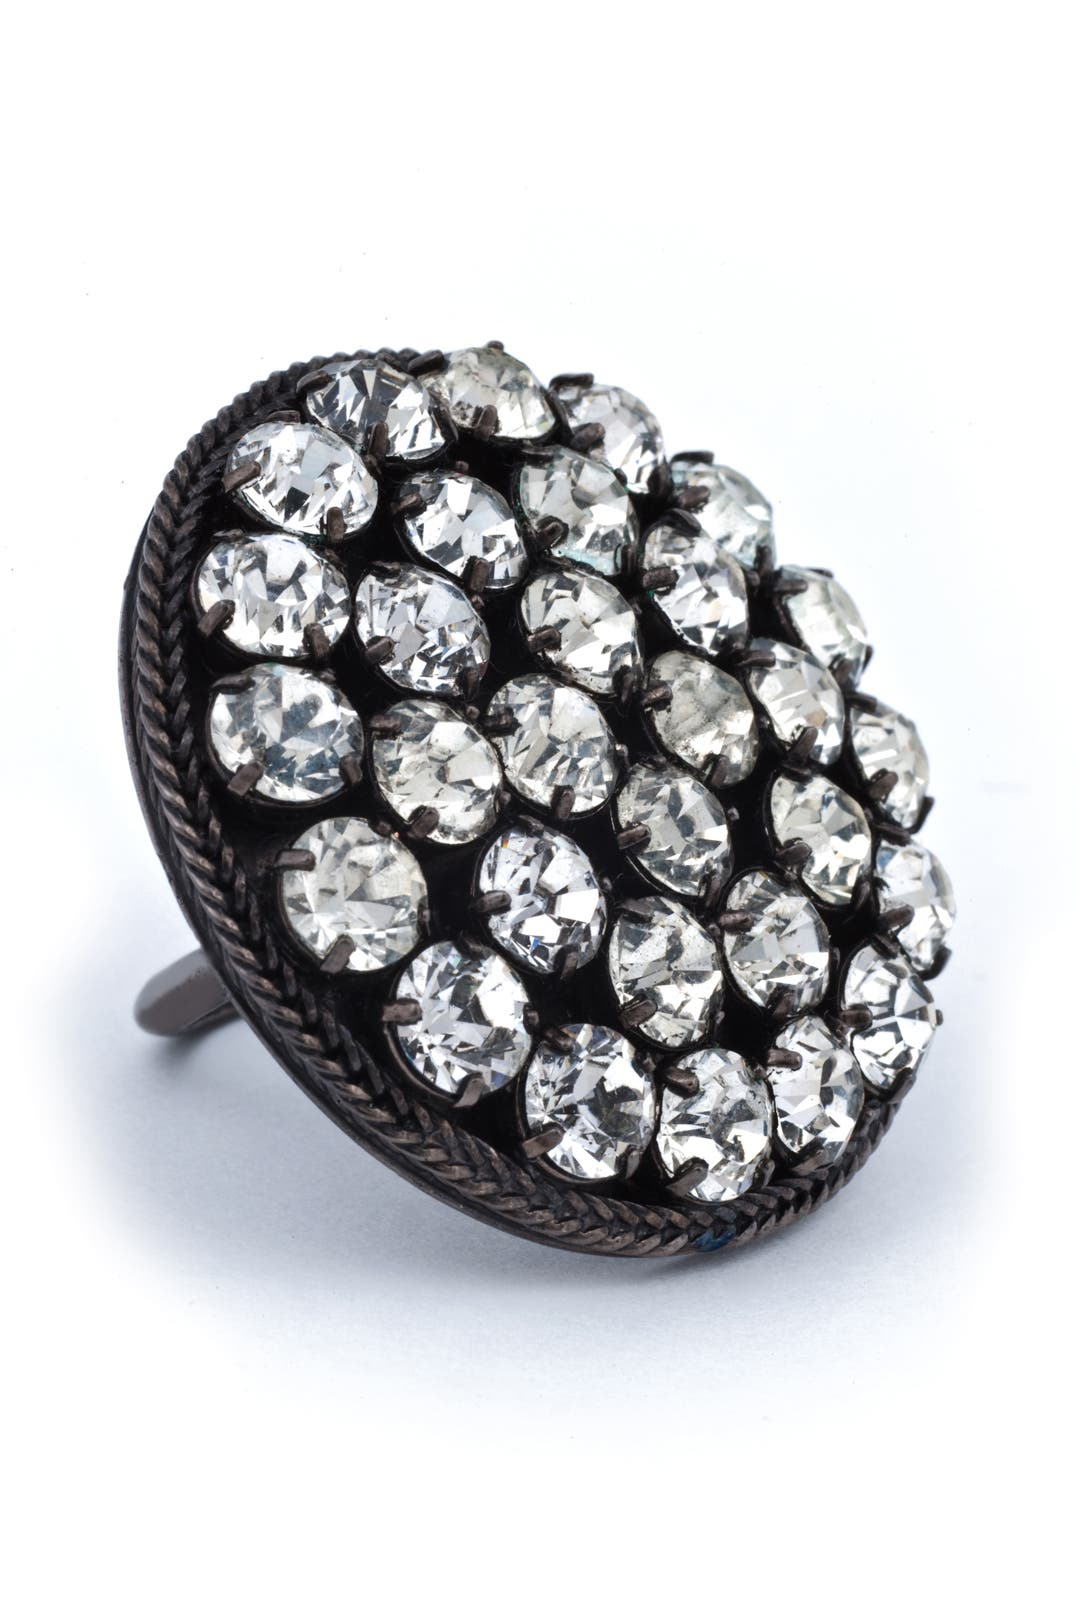 Princess Leia Ring by Erickson Beamon